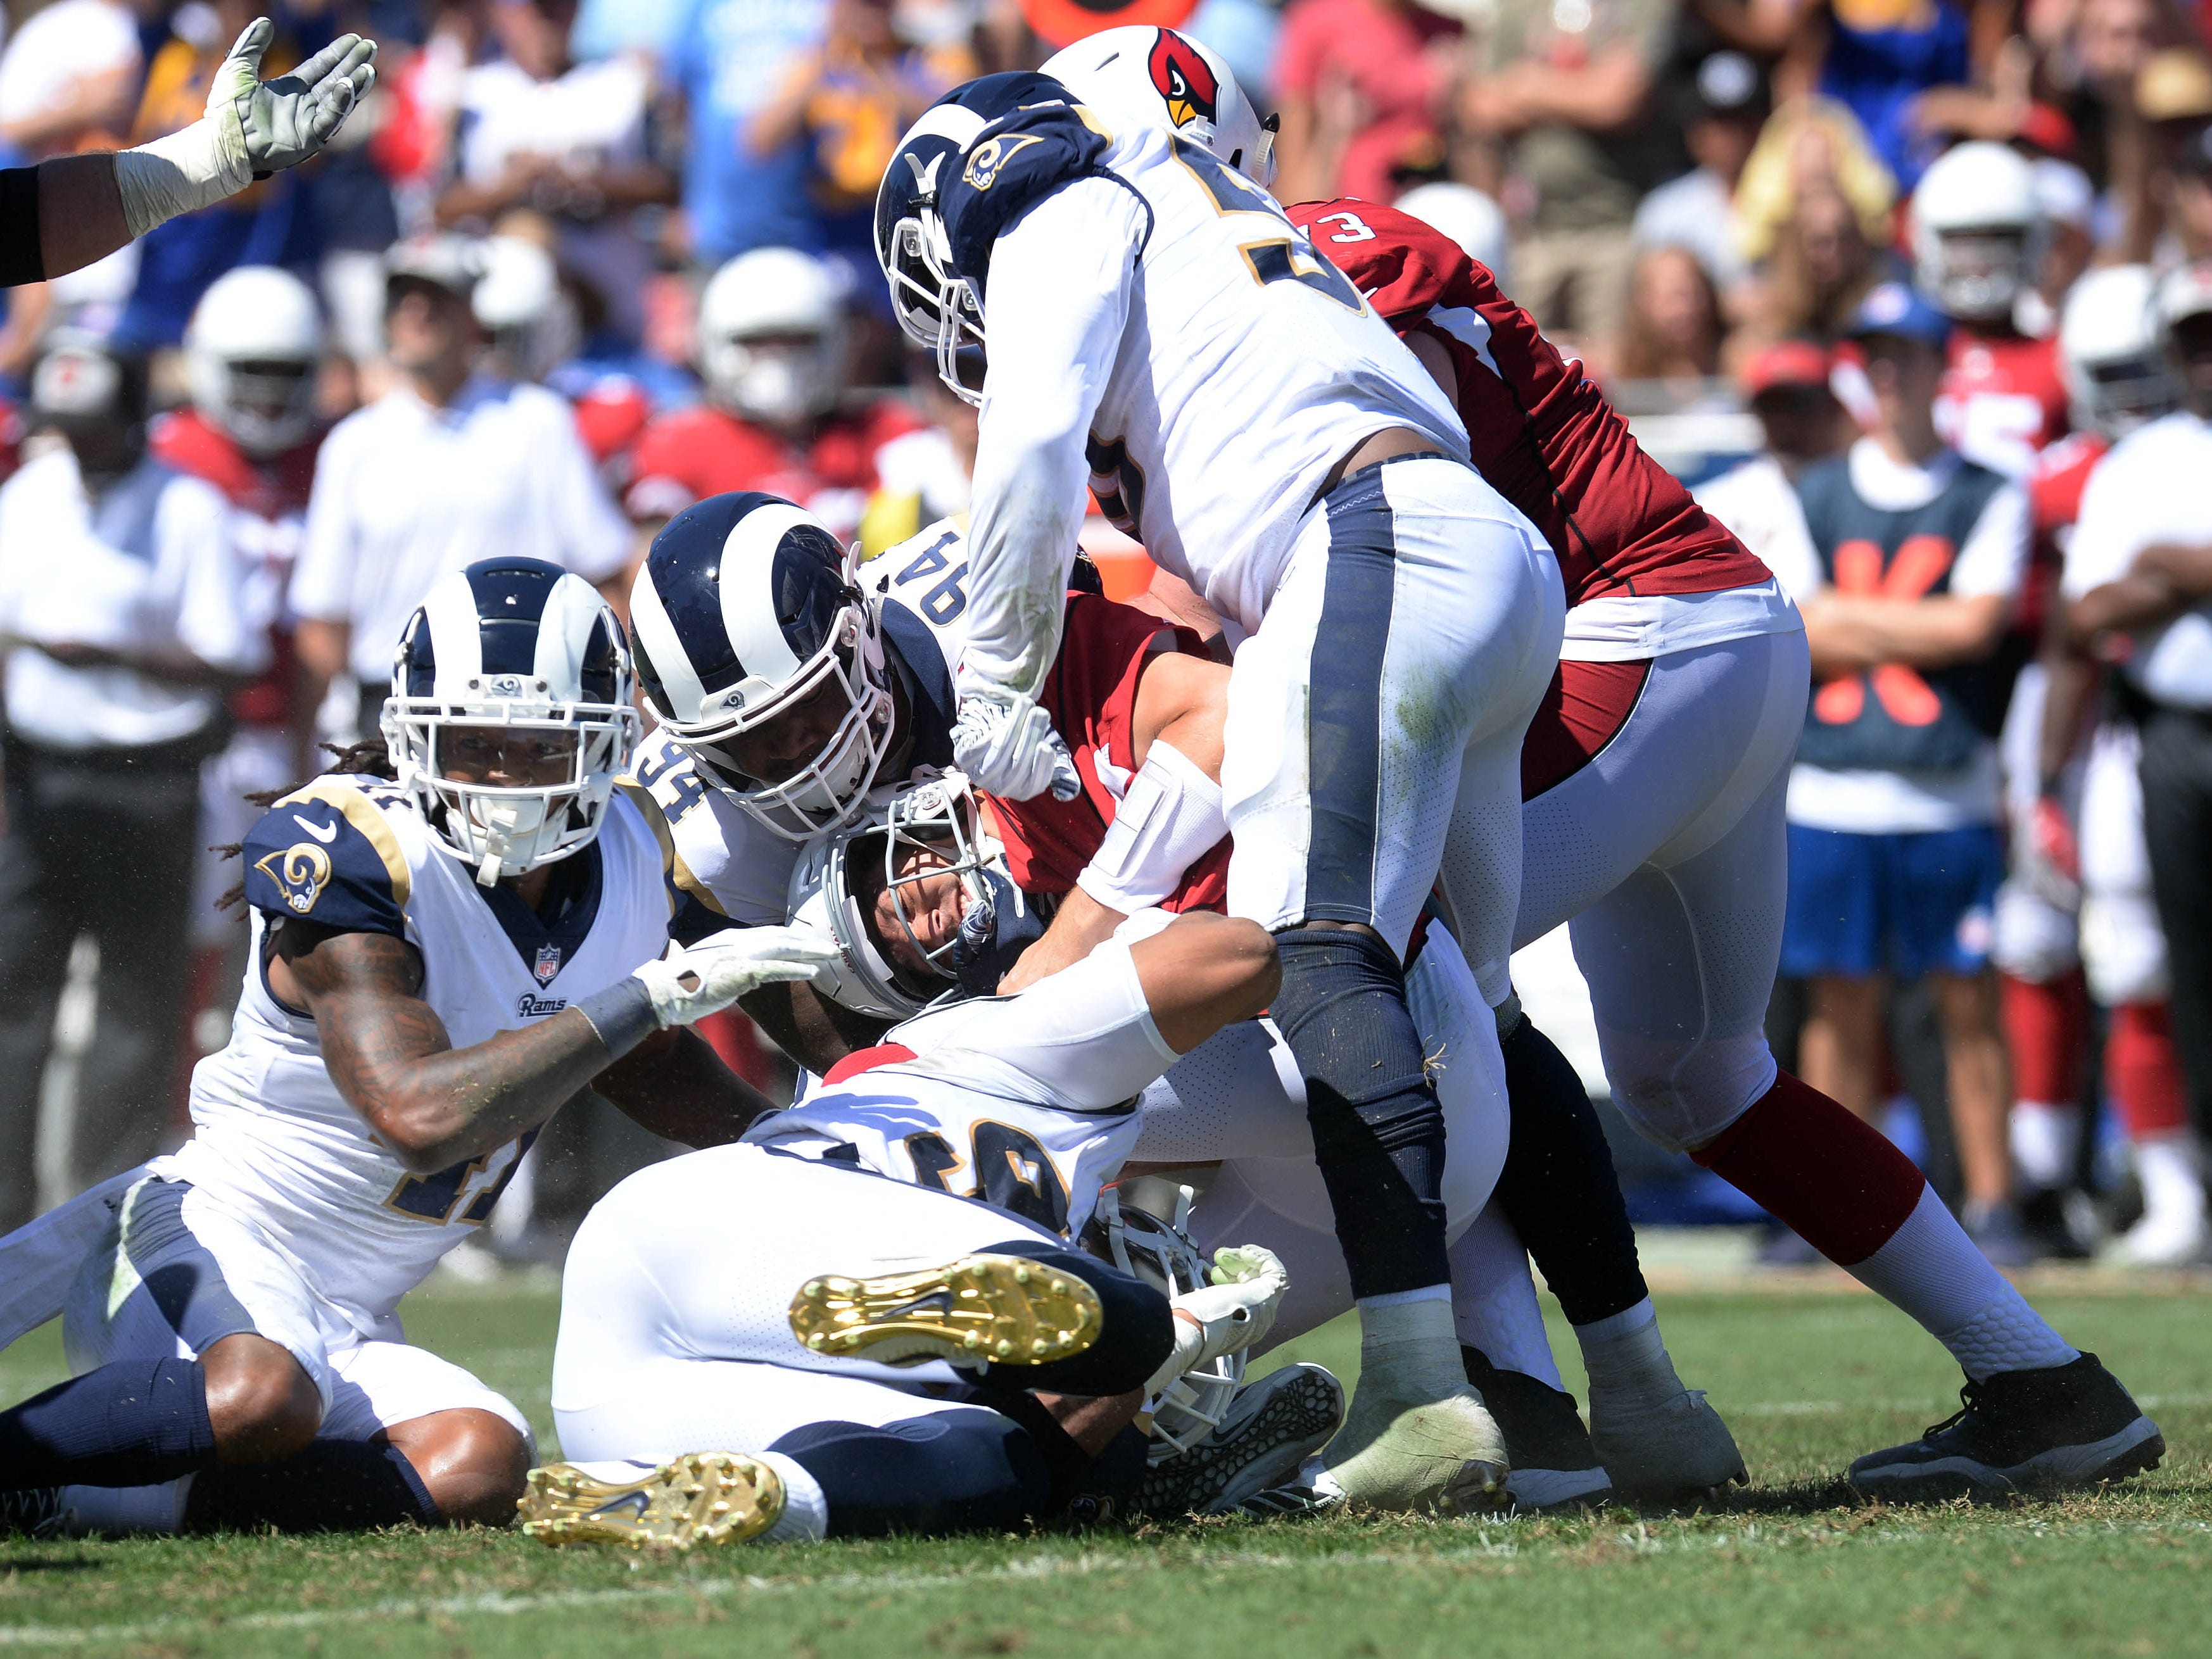 September 16, 2018; Los Angeles, CA, USA; Arizona Cardinals quarterback Sam Bradford (9) is brought down by the Los Angeles Rams defense during the first half at the Los Angeles Memorial Coliseum. Mandatory Credit: Gary A. Vasquez-USA TODAY Sports